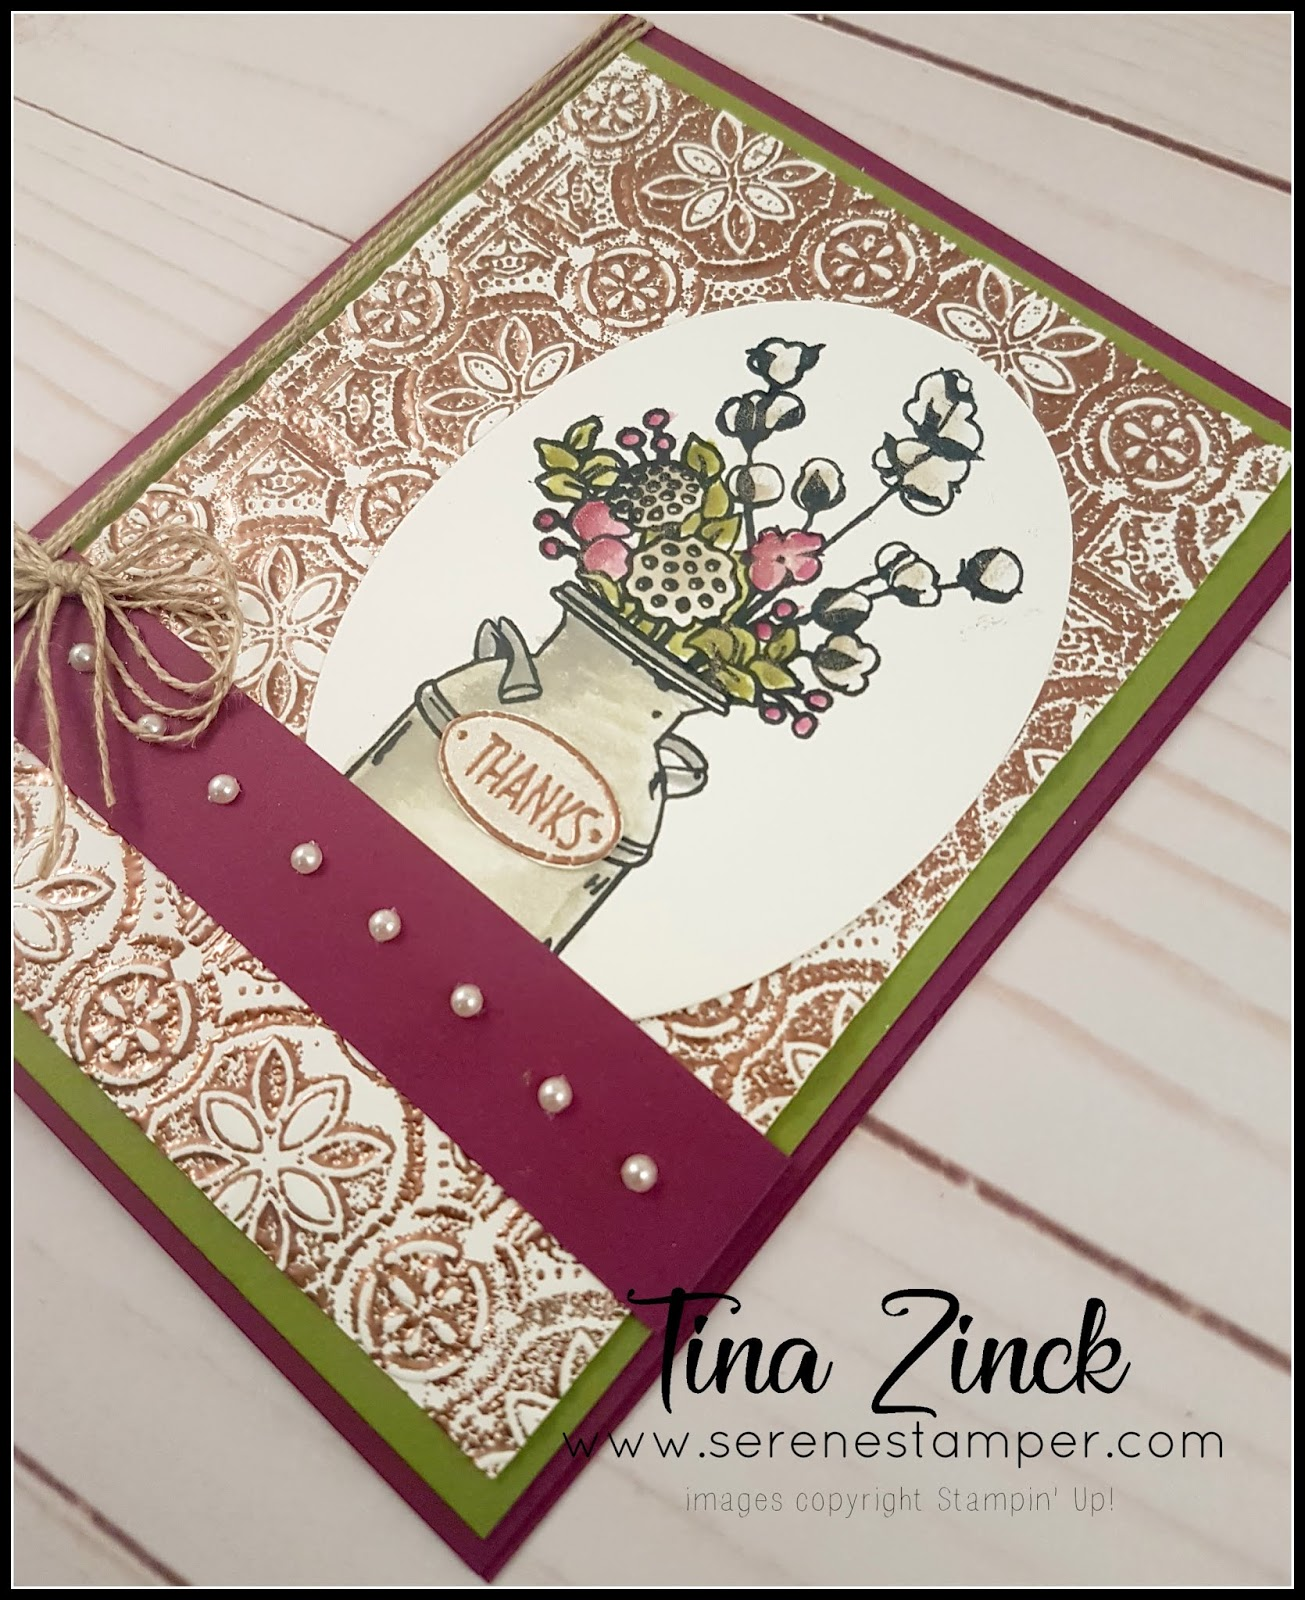 The Serene Stamper: Country Home Thanks Card Tutorial